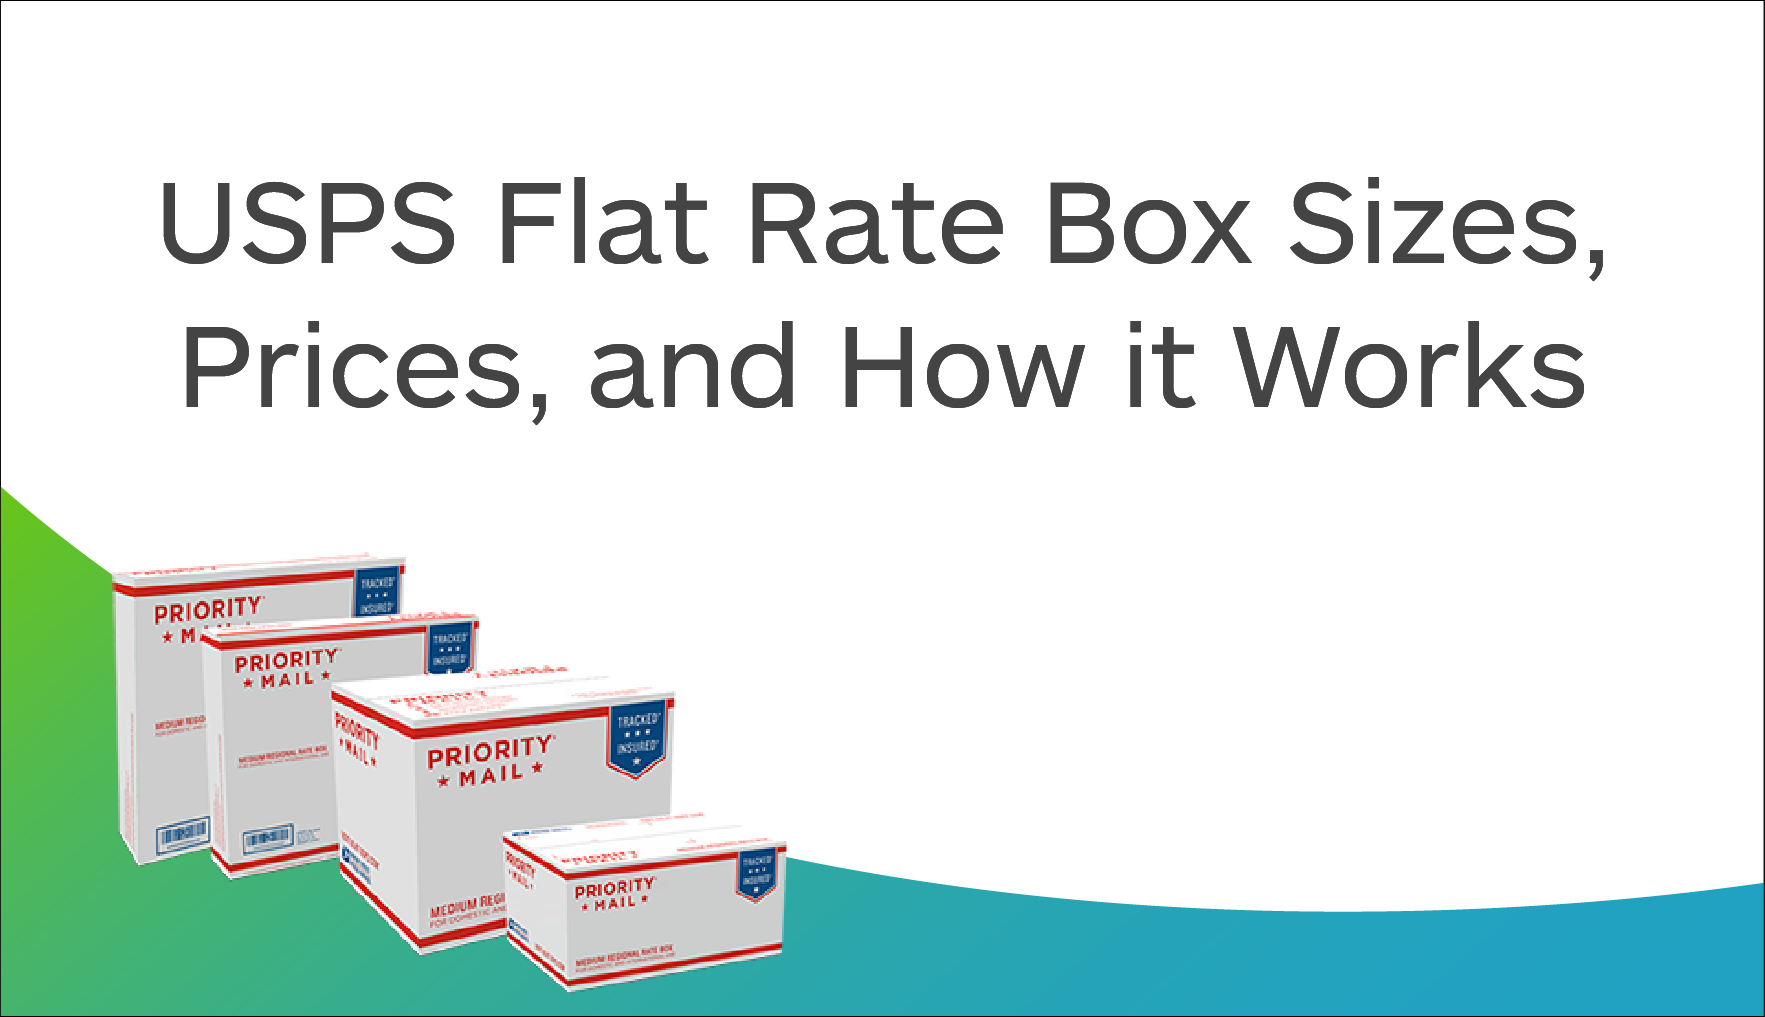 USPS Flat Rate Box Sizes, Prices, and How it Works